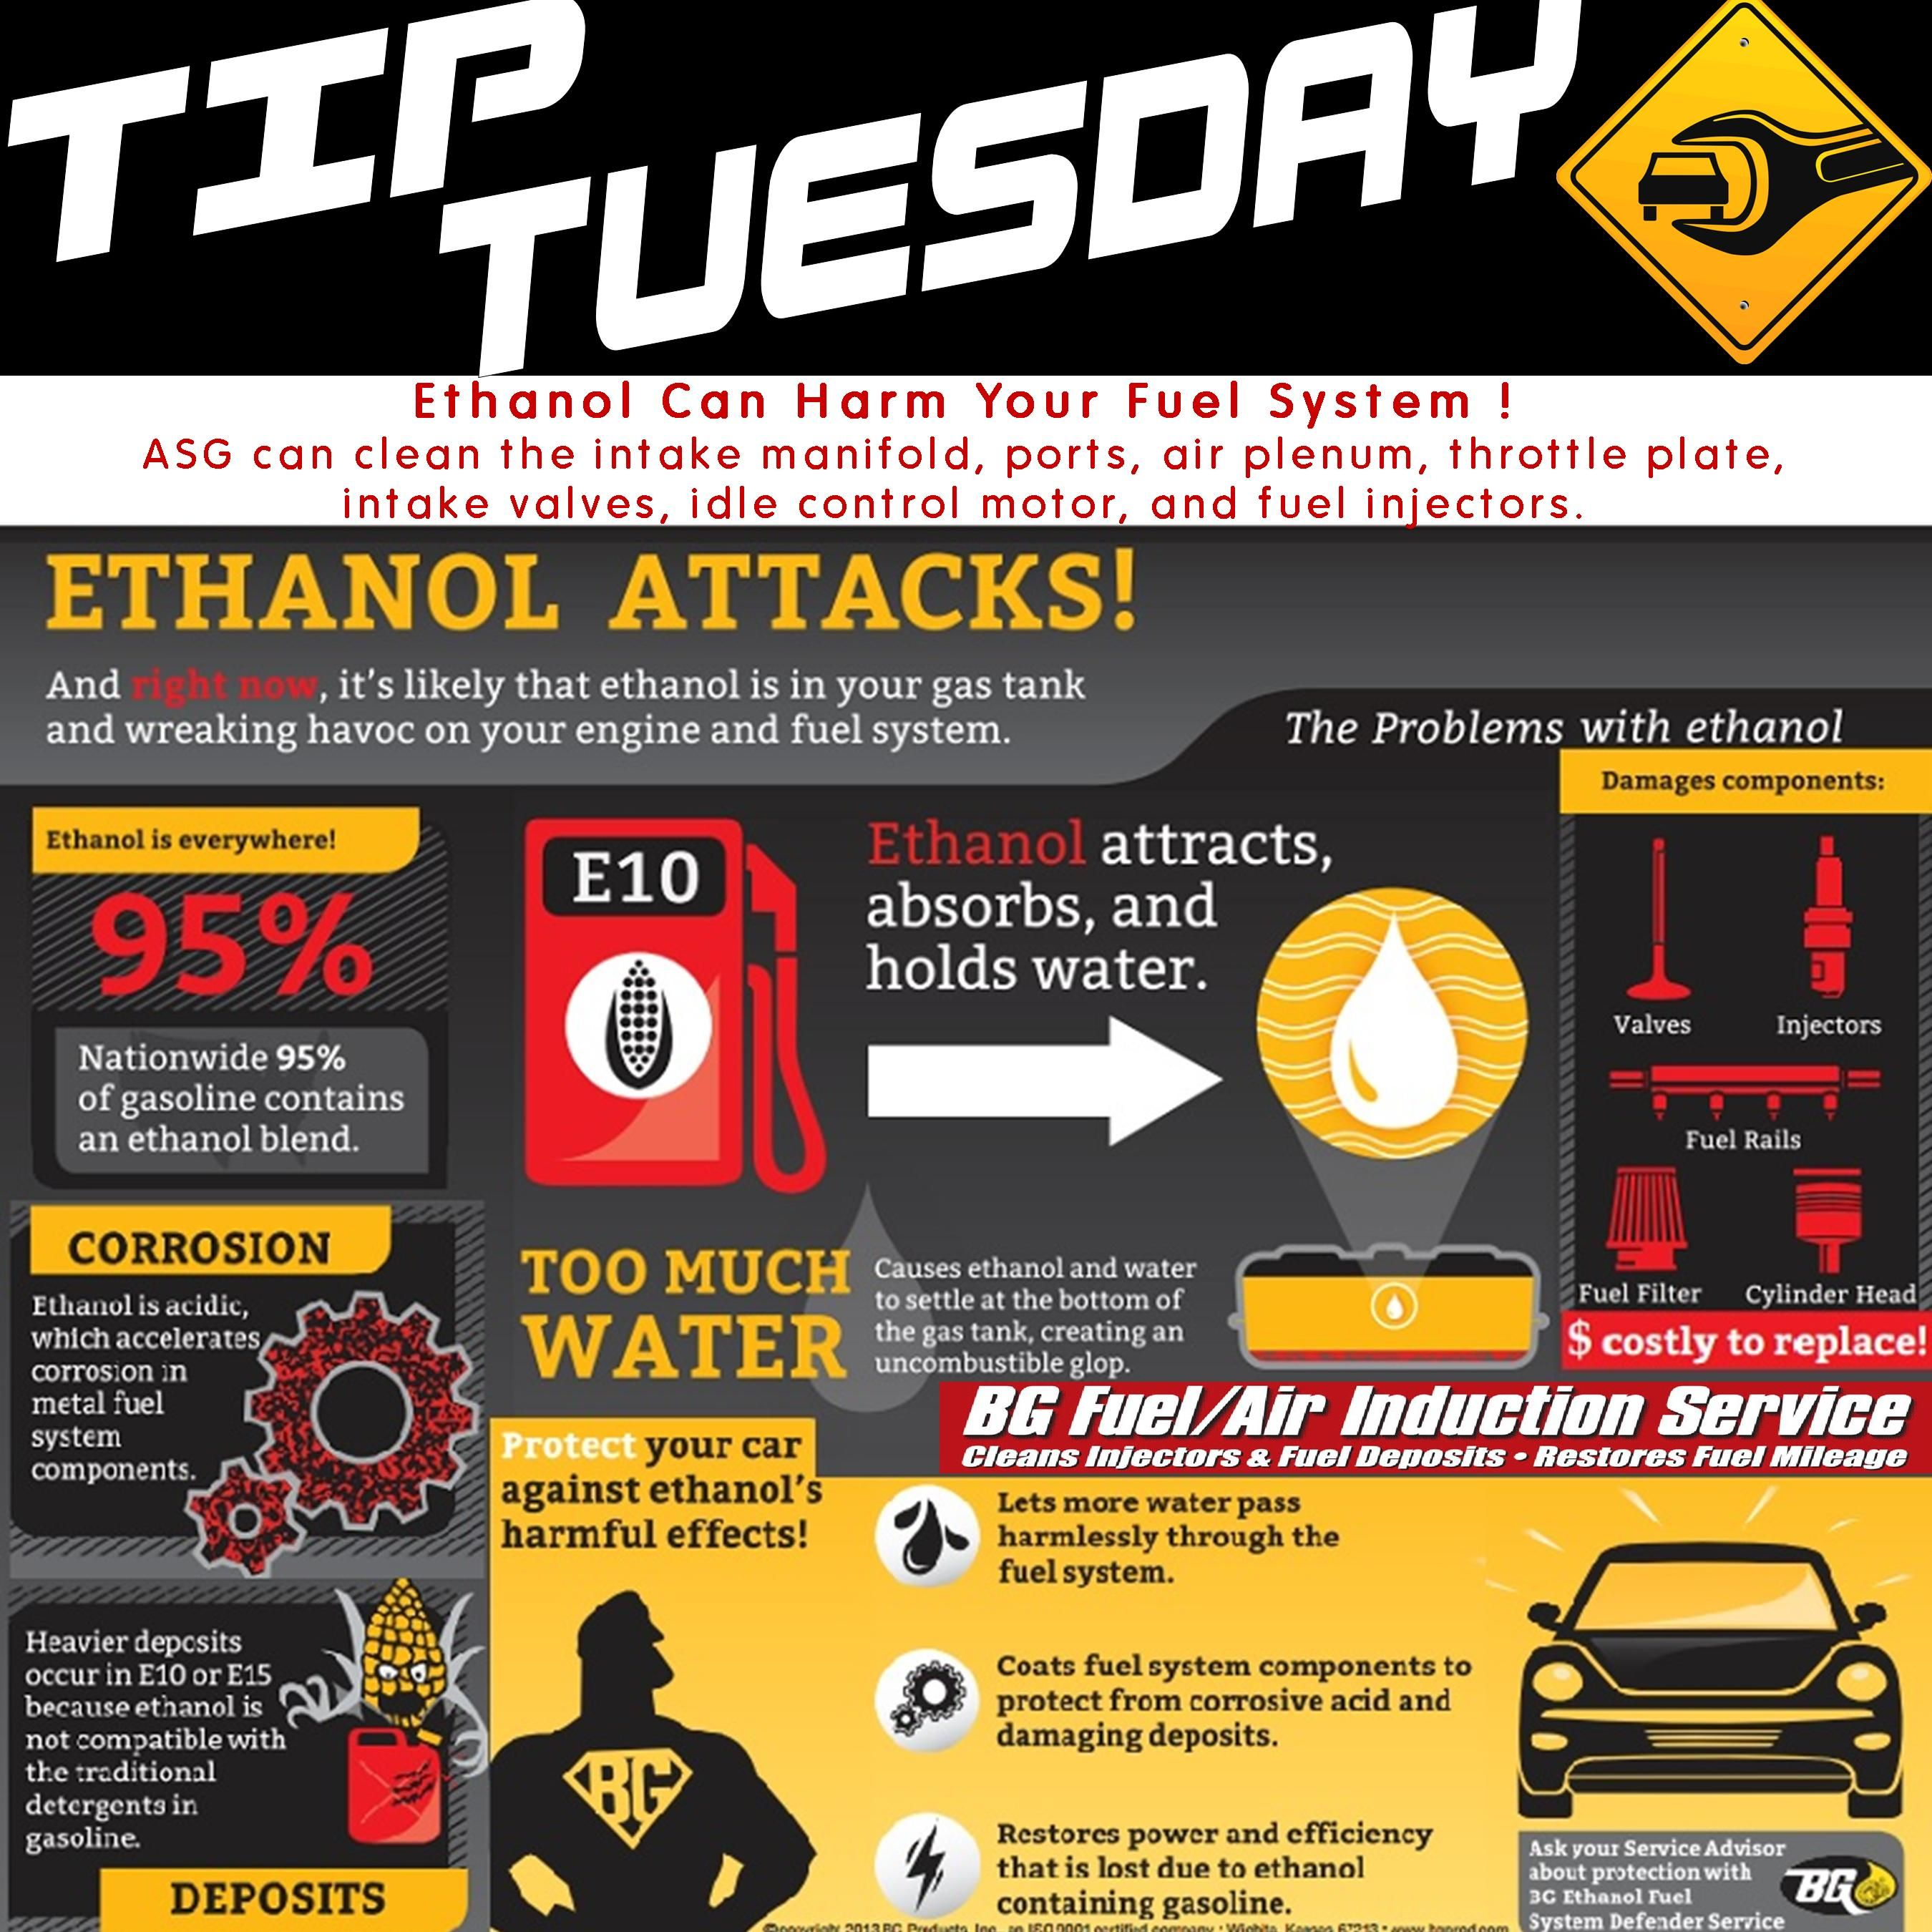 Car Care Tip Ethanol Attacks. Ethanol can Harm your Fuel